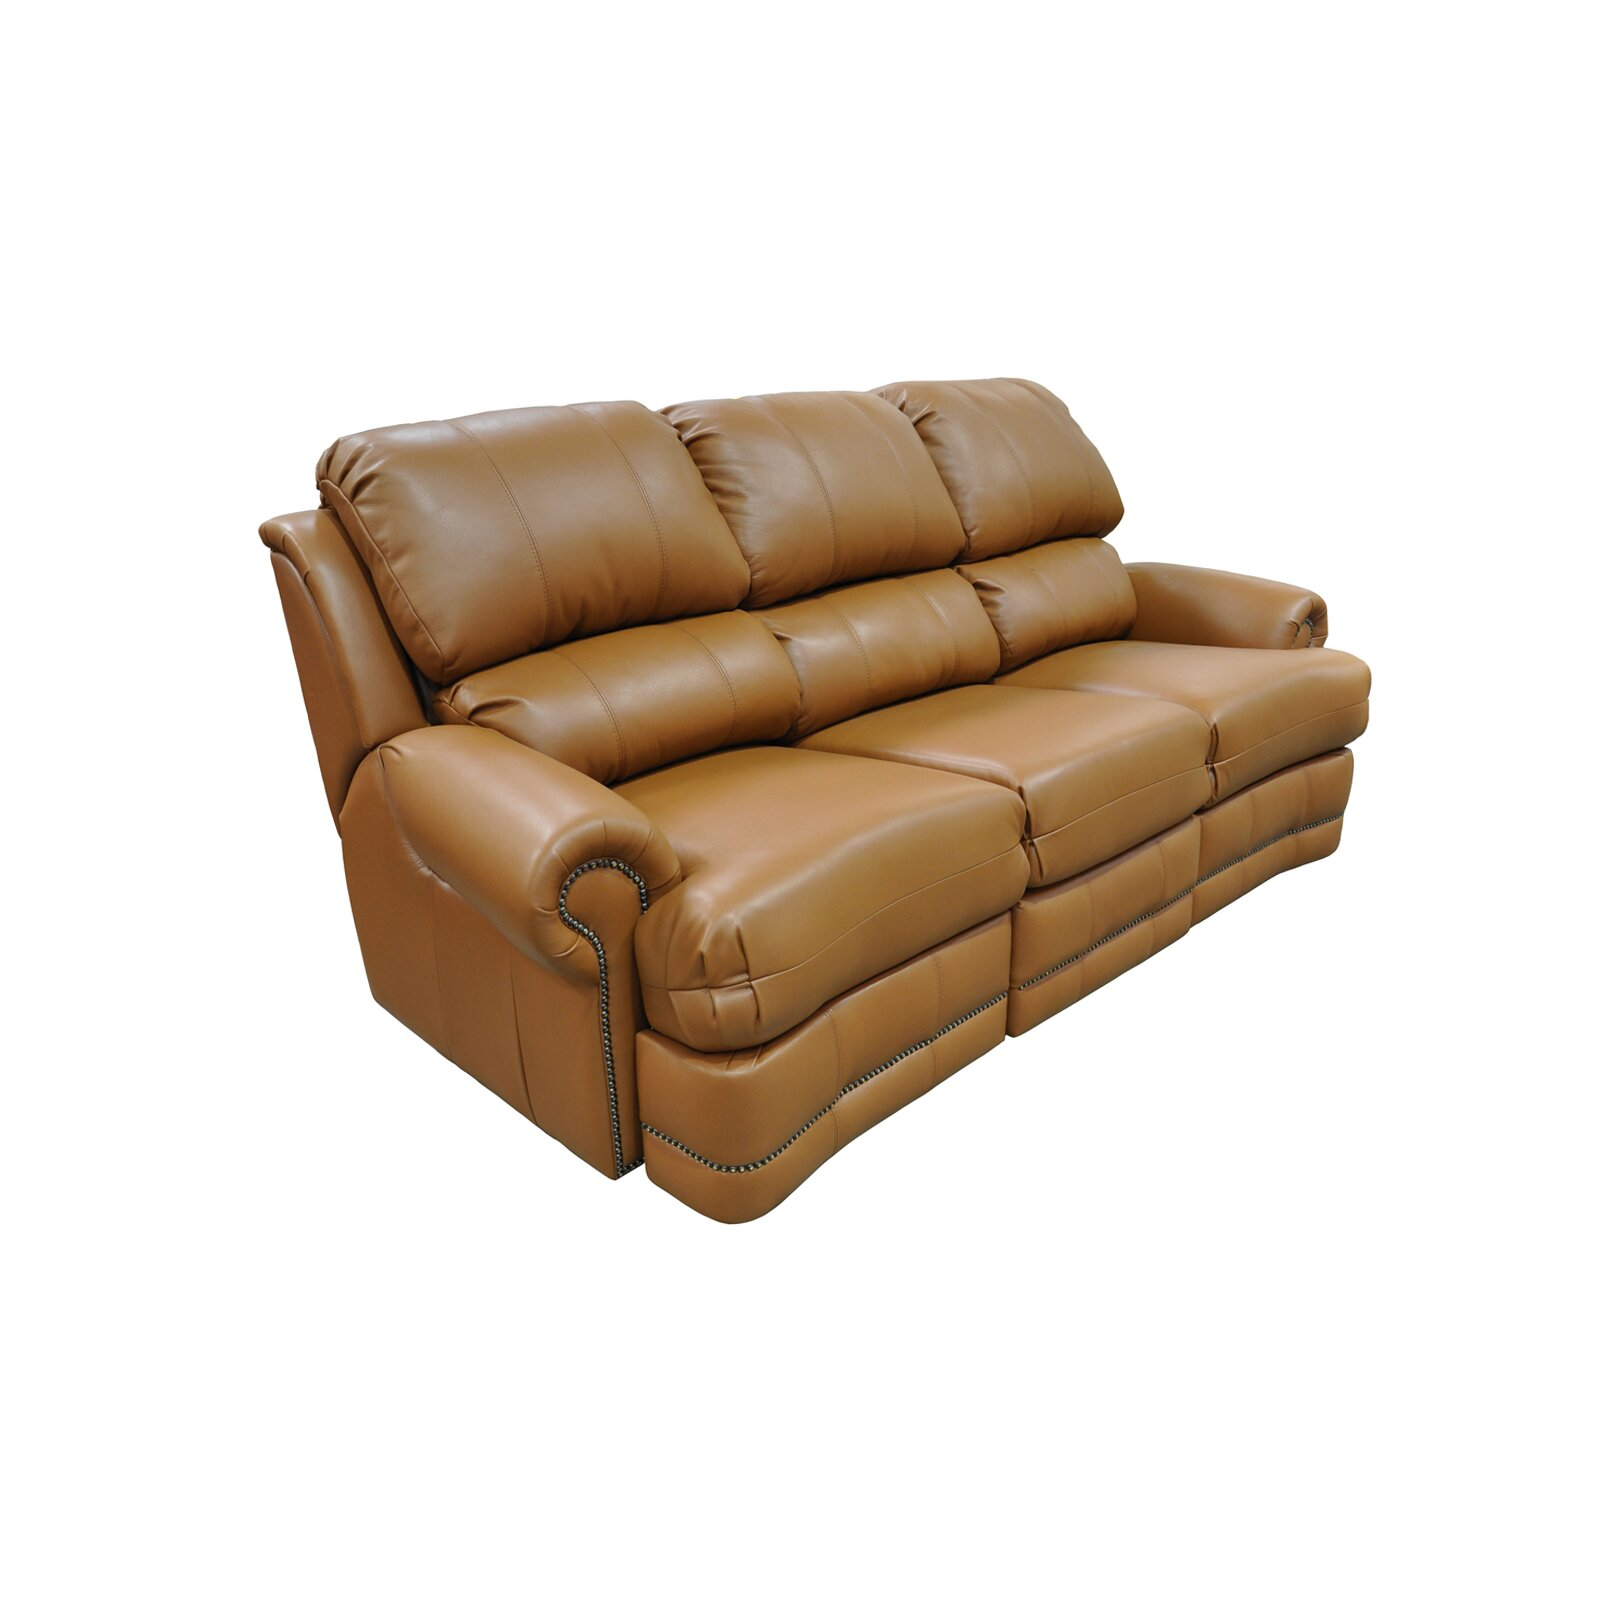 Omnia Leather Morgan Leather Reclining Sofa Wayfair